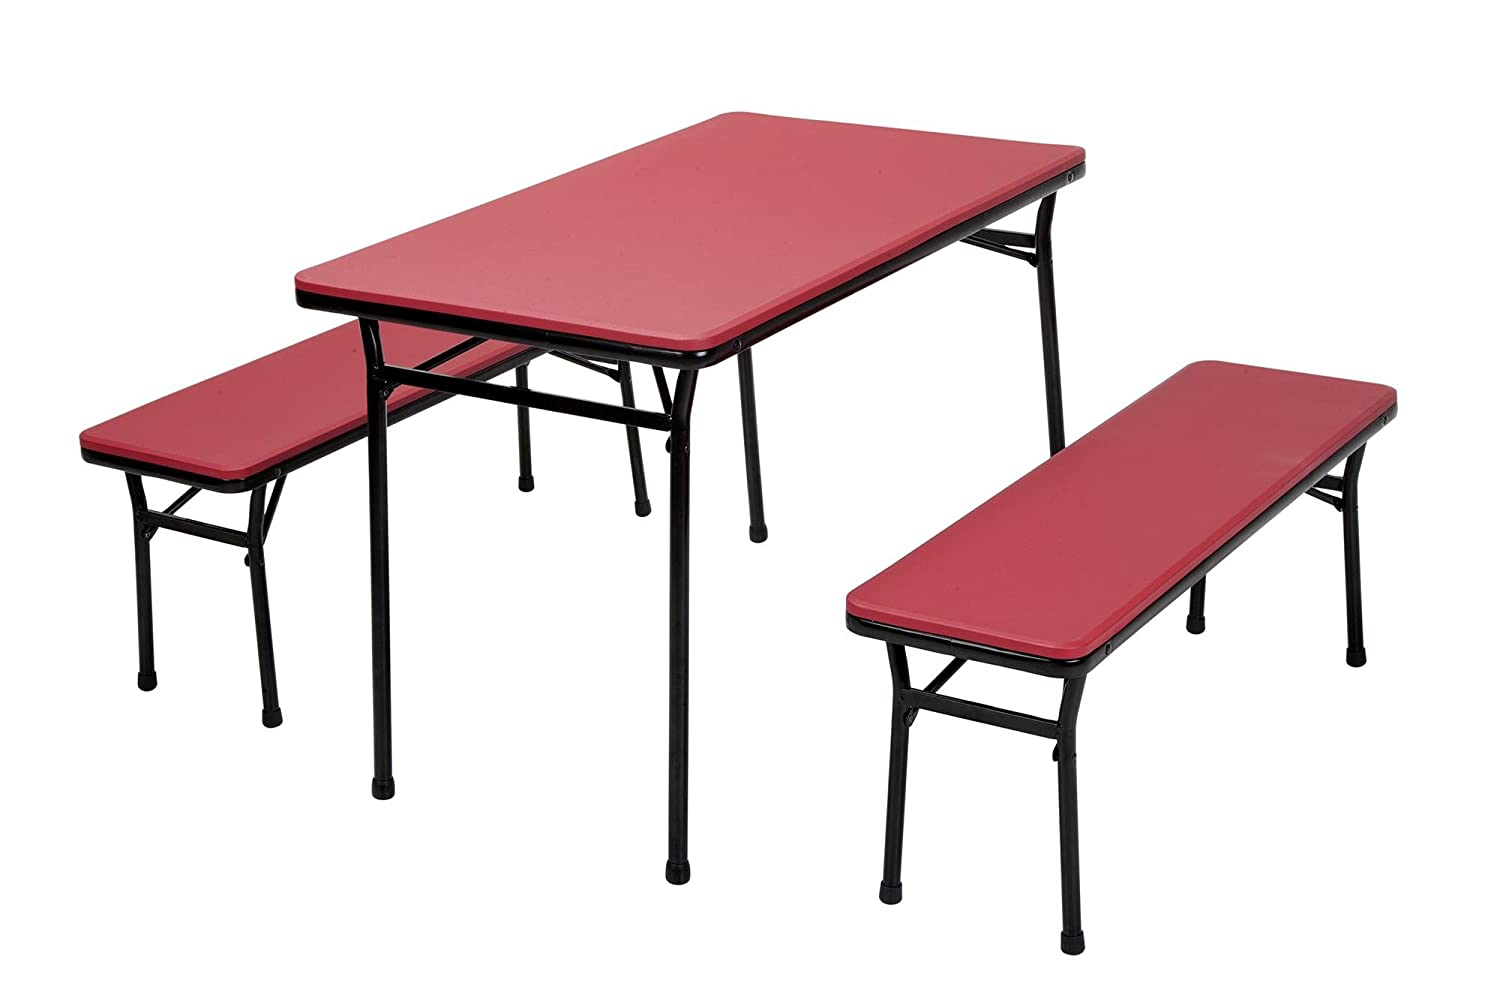 COSCO 3 Piece Indoor Outdoor Table and 2 Bench Tailgate Set, Red Top, Black Frame